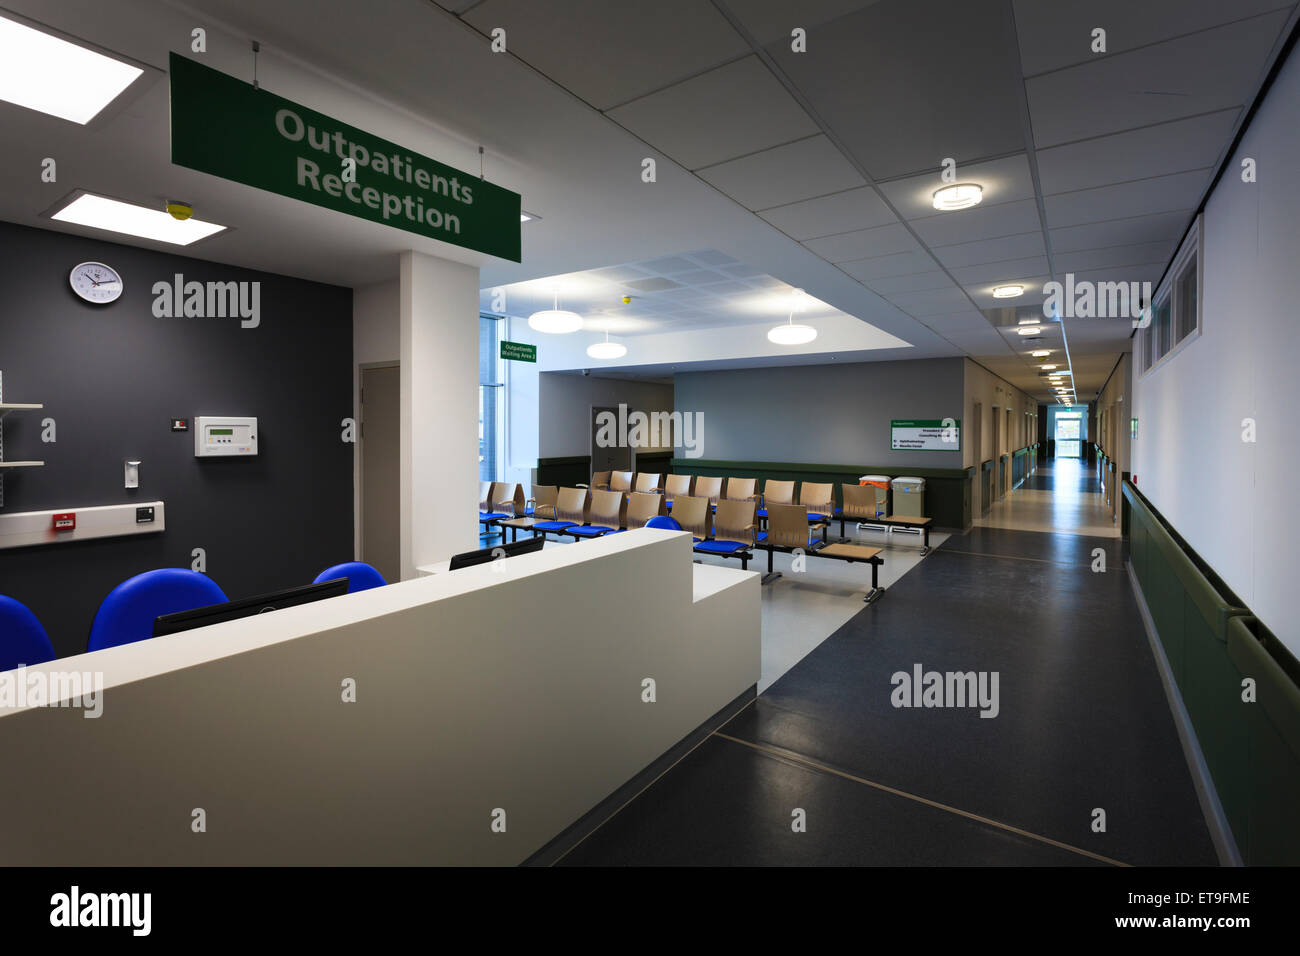 Hospital outpatients reception desk and waiting area without people - Stock Image